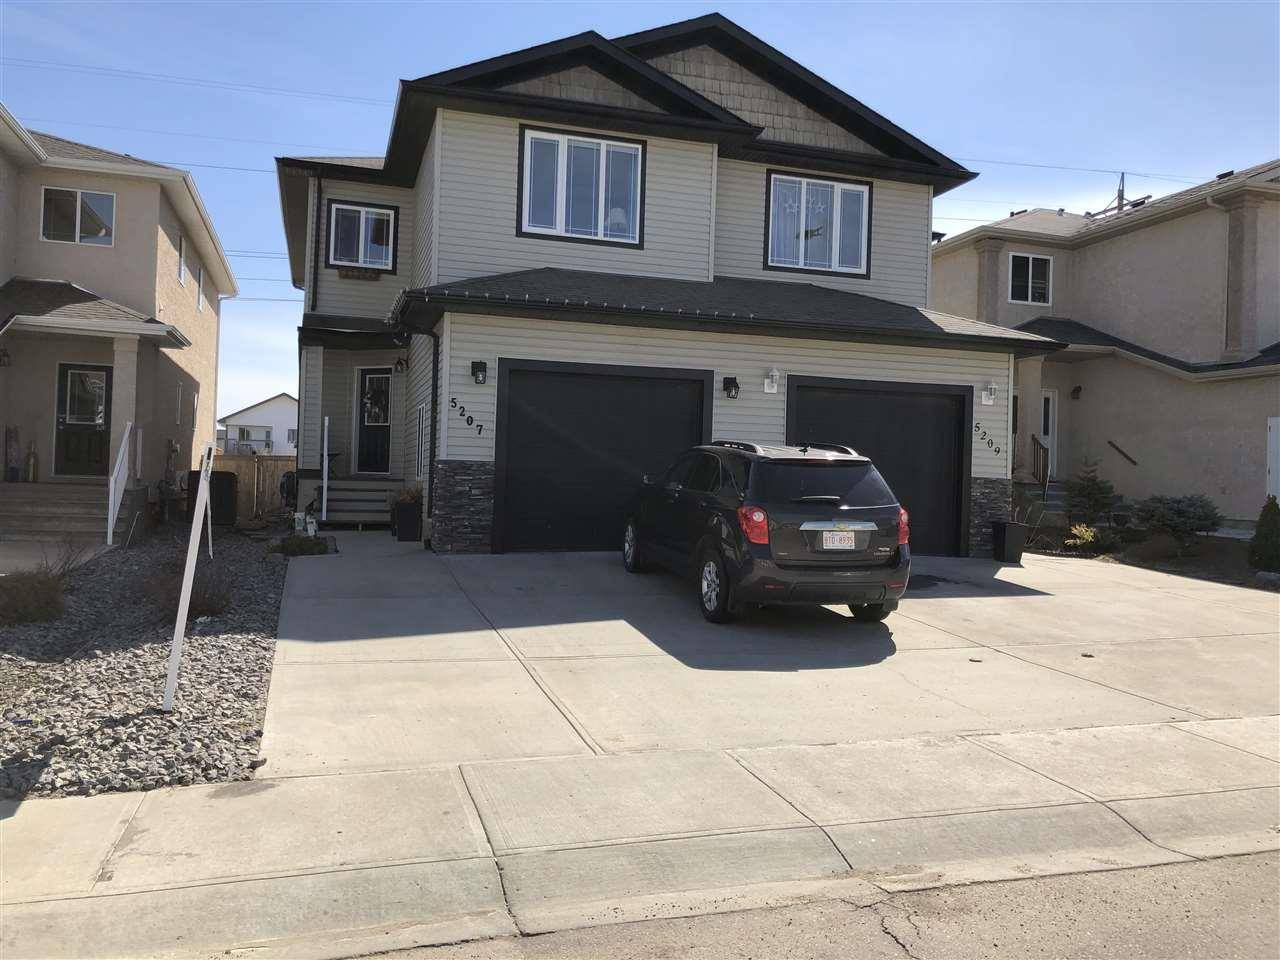 Townhouse for sale at 5207 164 Ave Nw Edmonton Alberta - MLS: E4187501